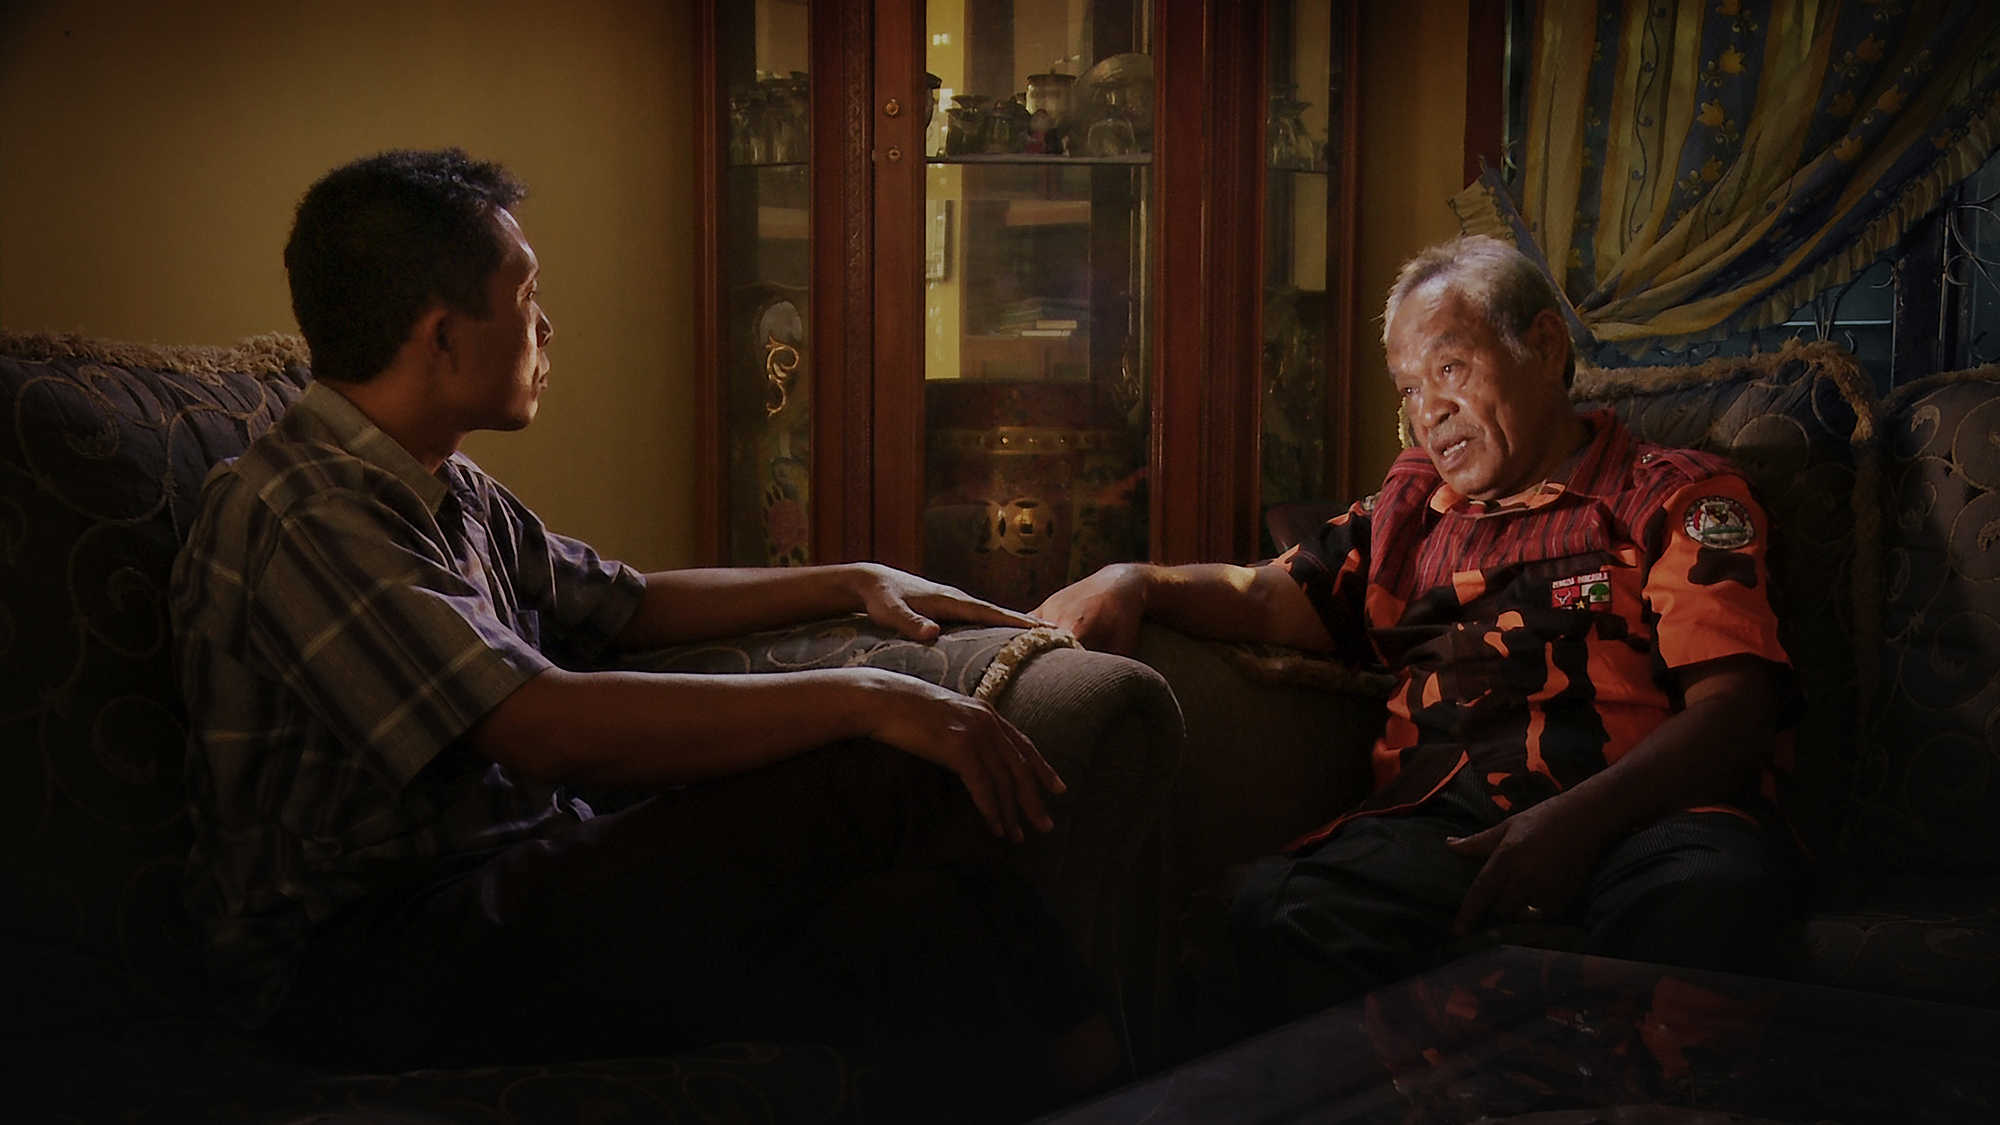 The Look of Silence (image 3)